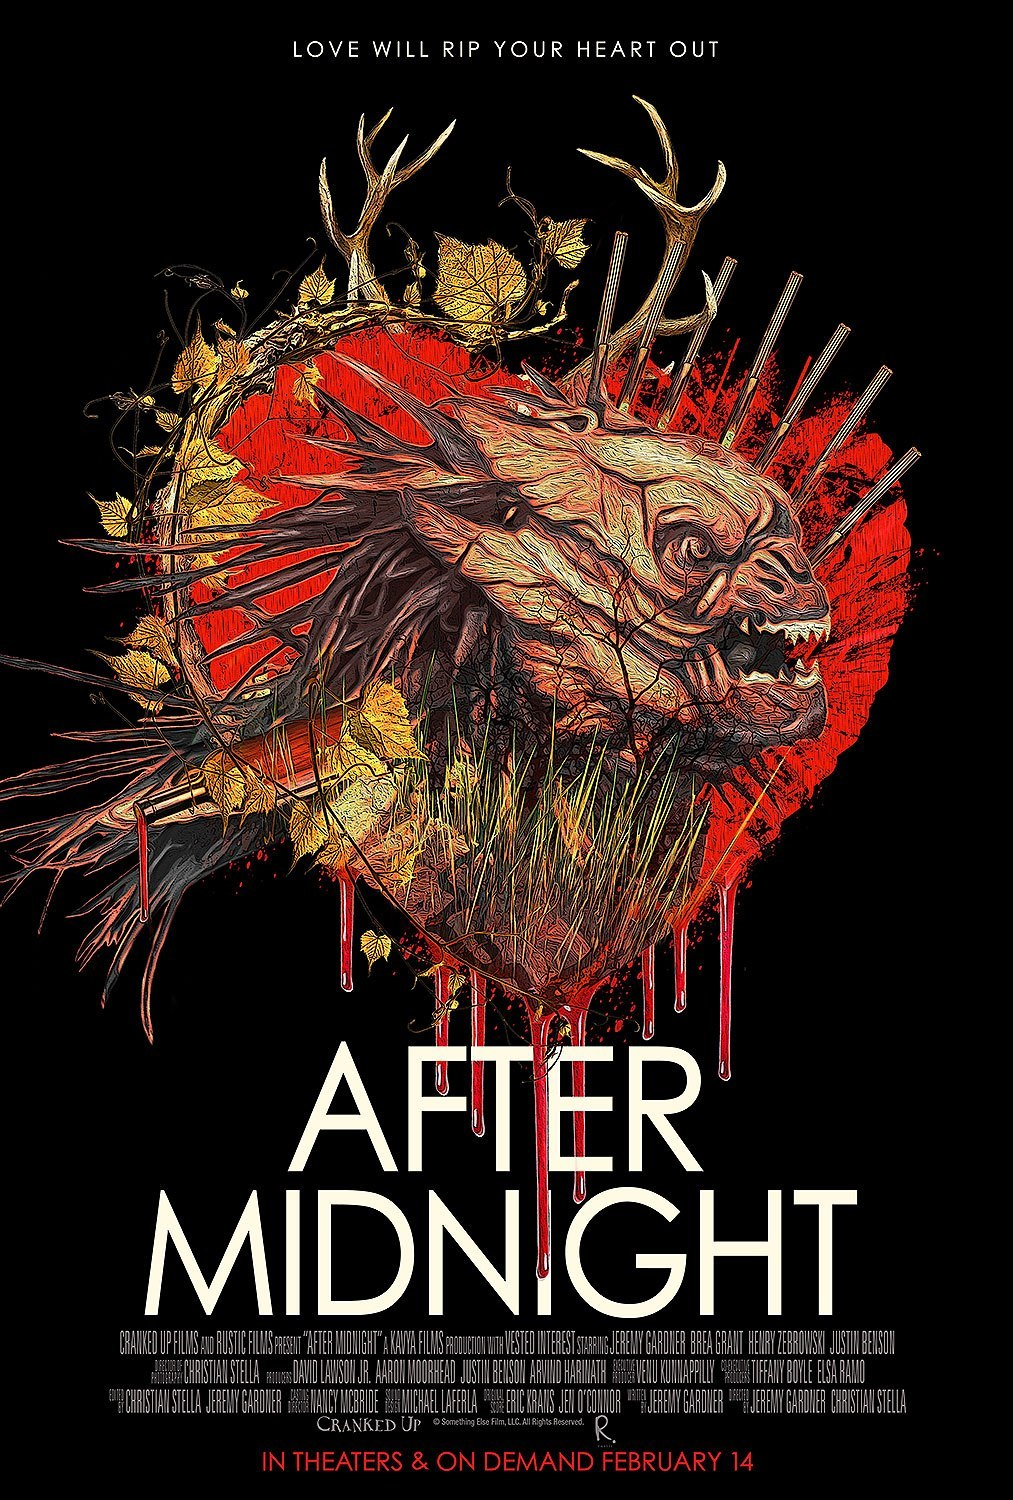 after midnight - Cats Blamed for Monstrous Mayhem in Latest Clip from AFTER MIDNIGHT